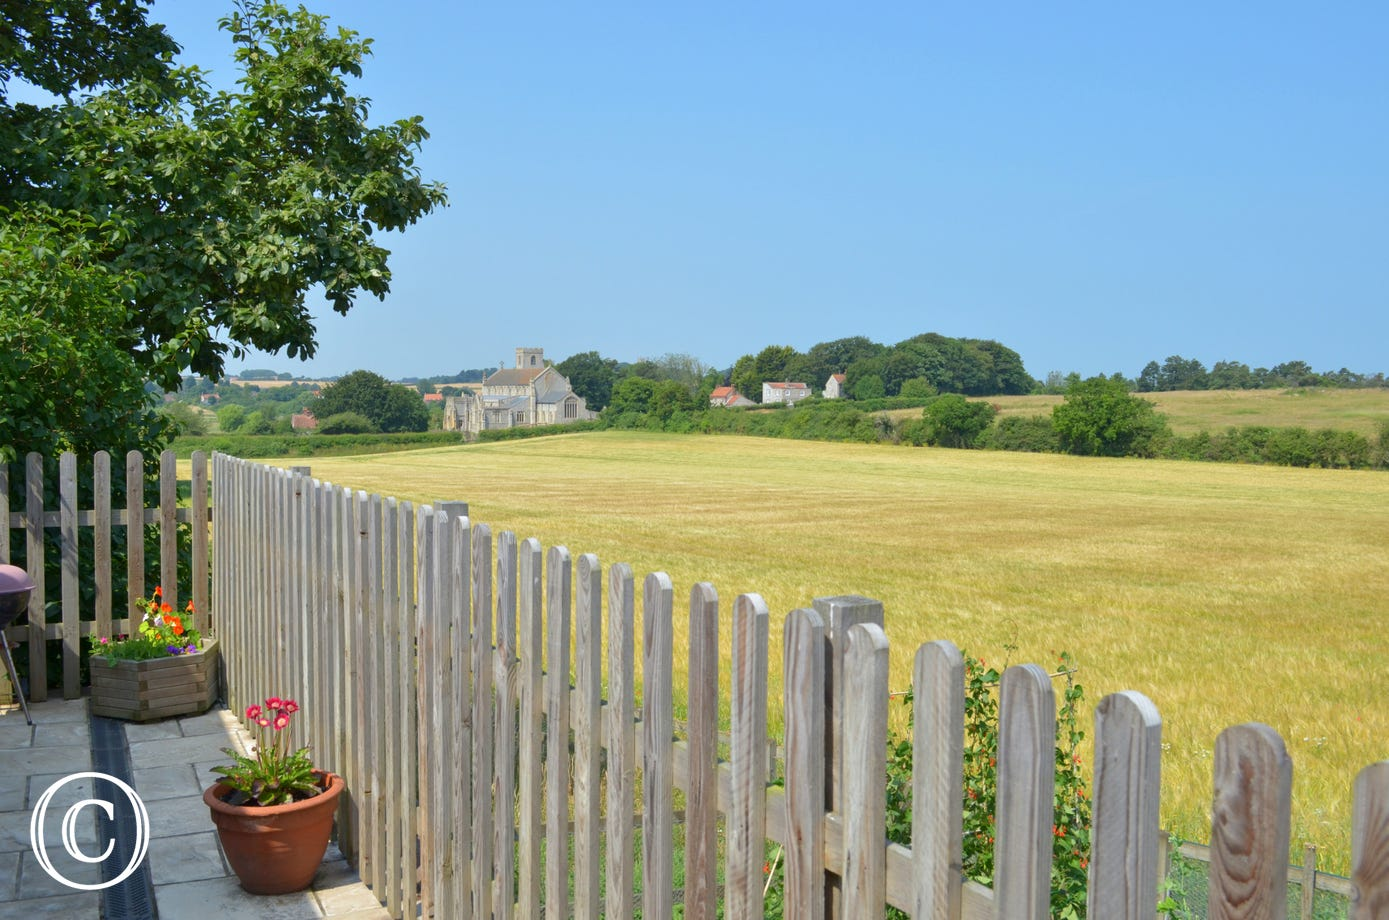 A lovely view across the field to the village of Cley.